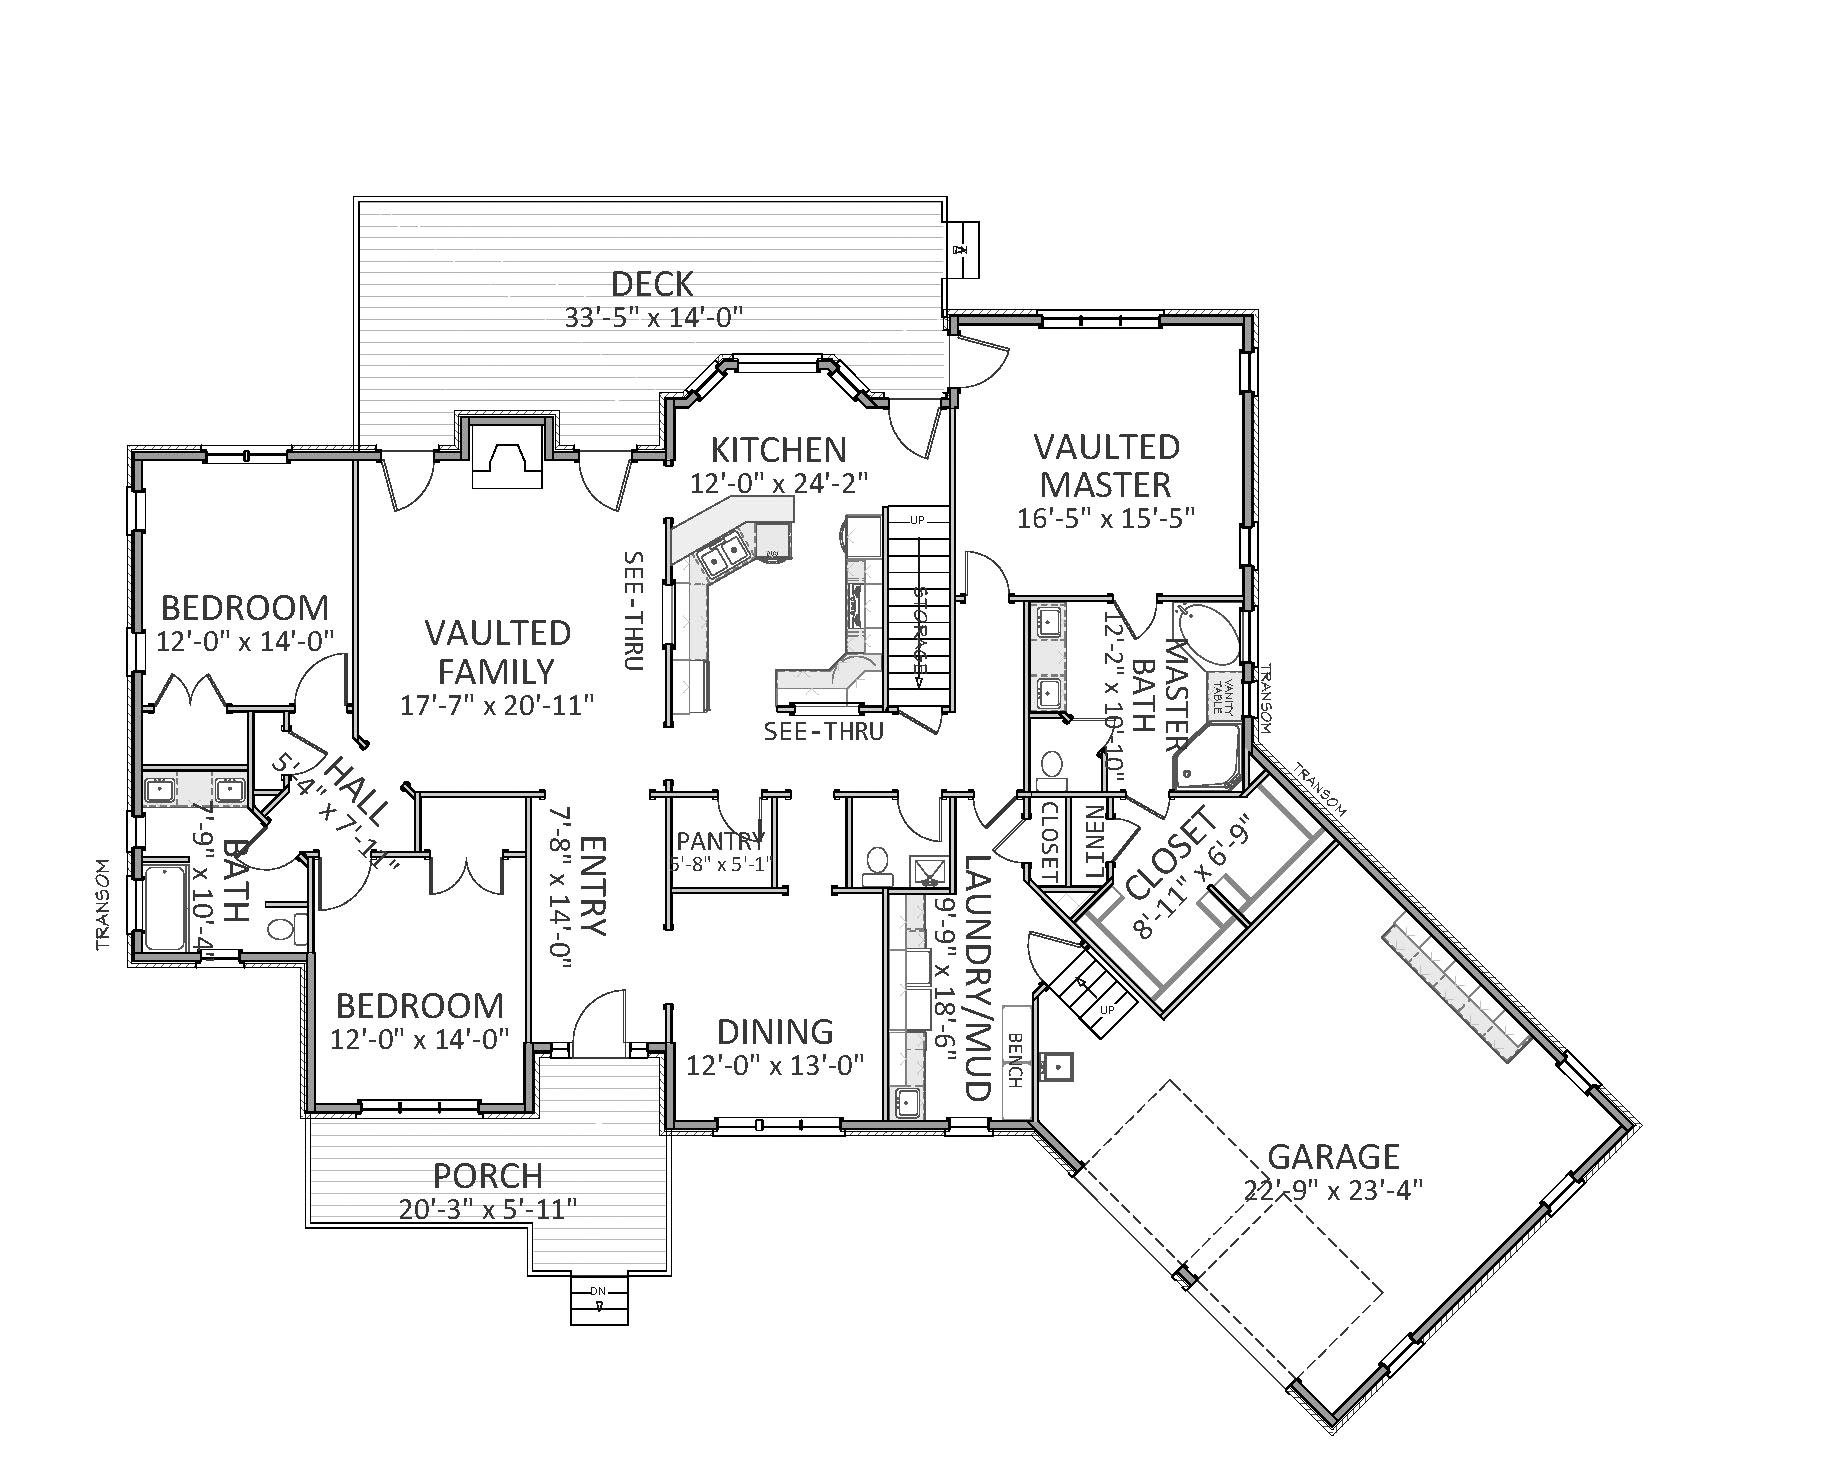 House plan 189 1000 3 bdrm 2 549 sq ft colonial home for 1000 sq ft house plans first floor